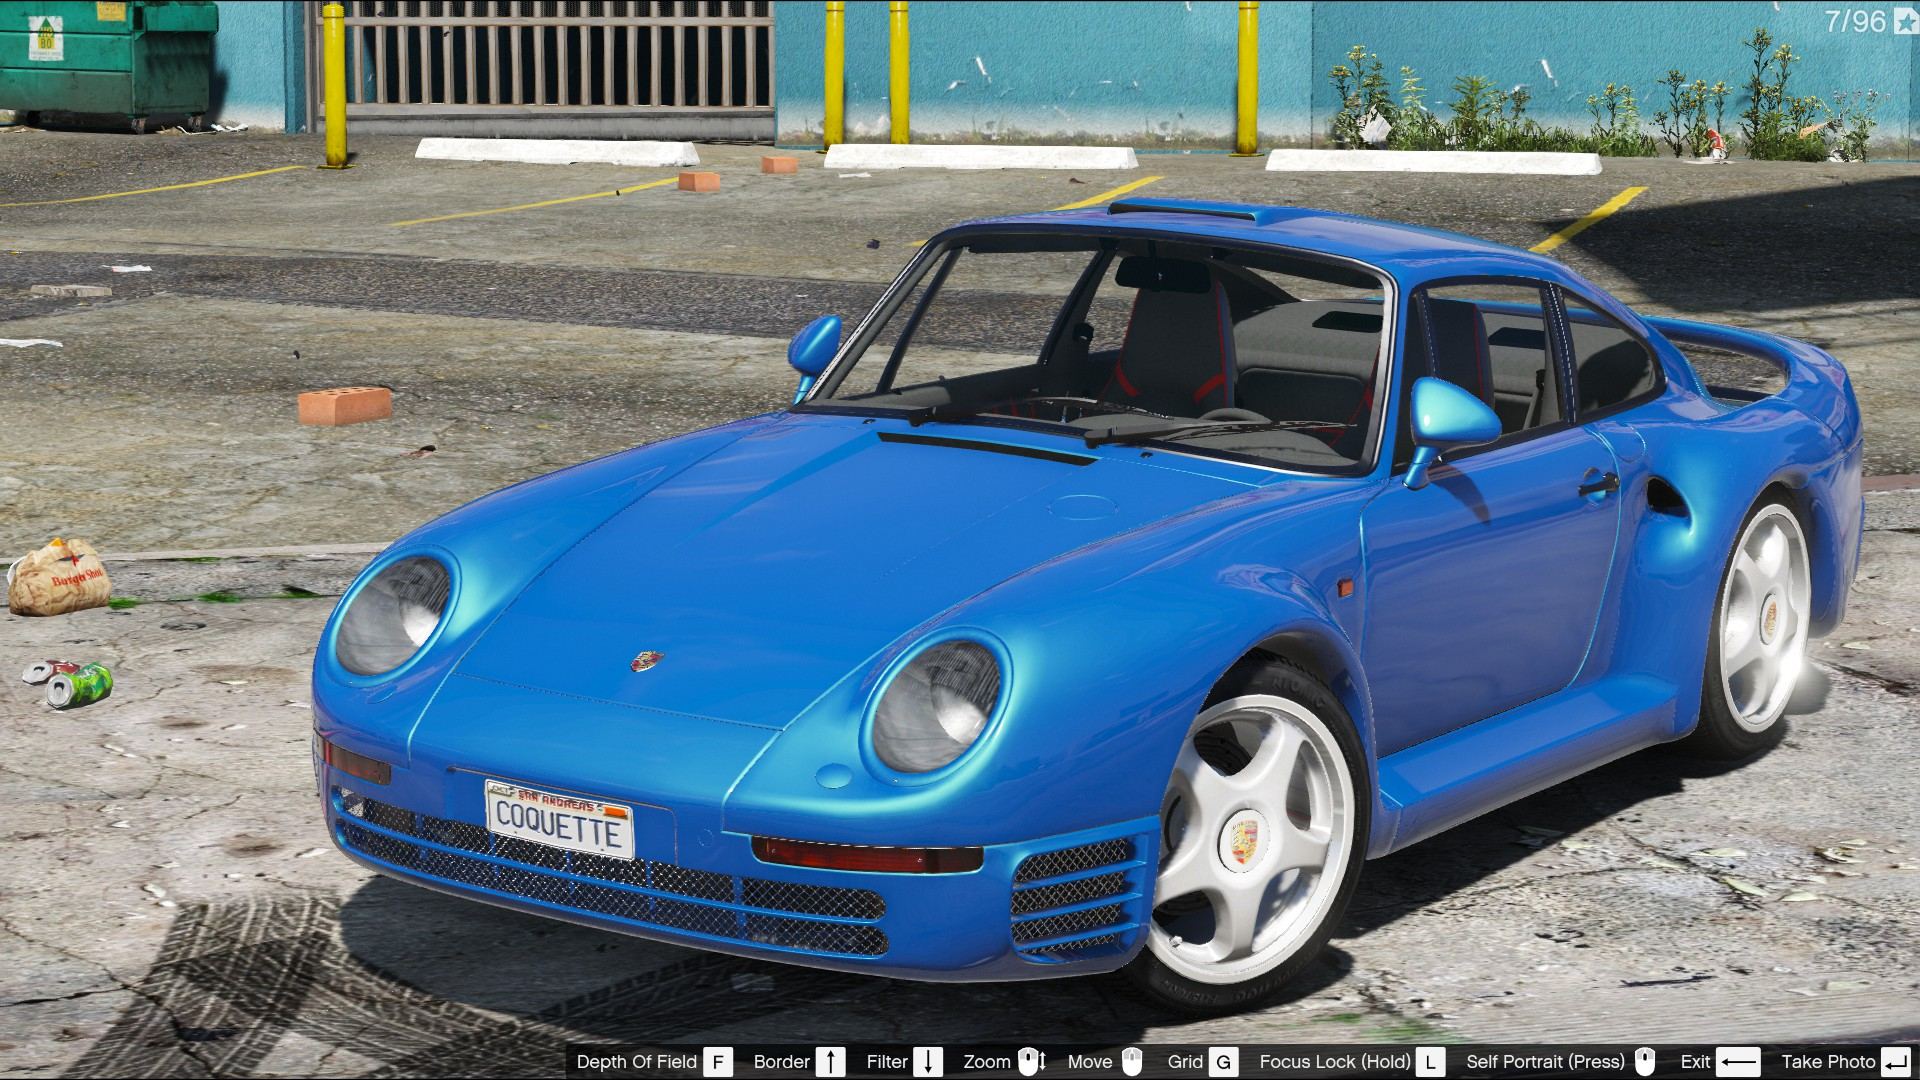 Steam Community :: Guide :: Realistic Car Pack for GTA V (160 CARS)